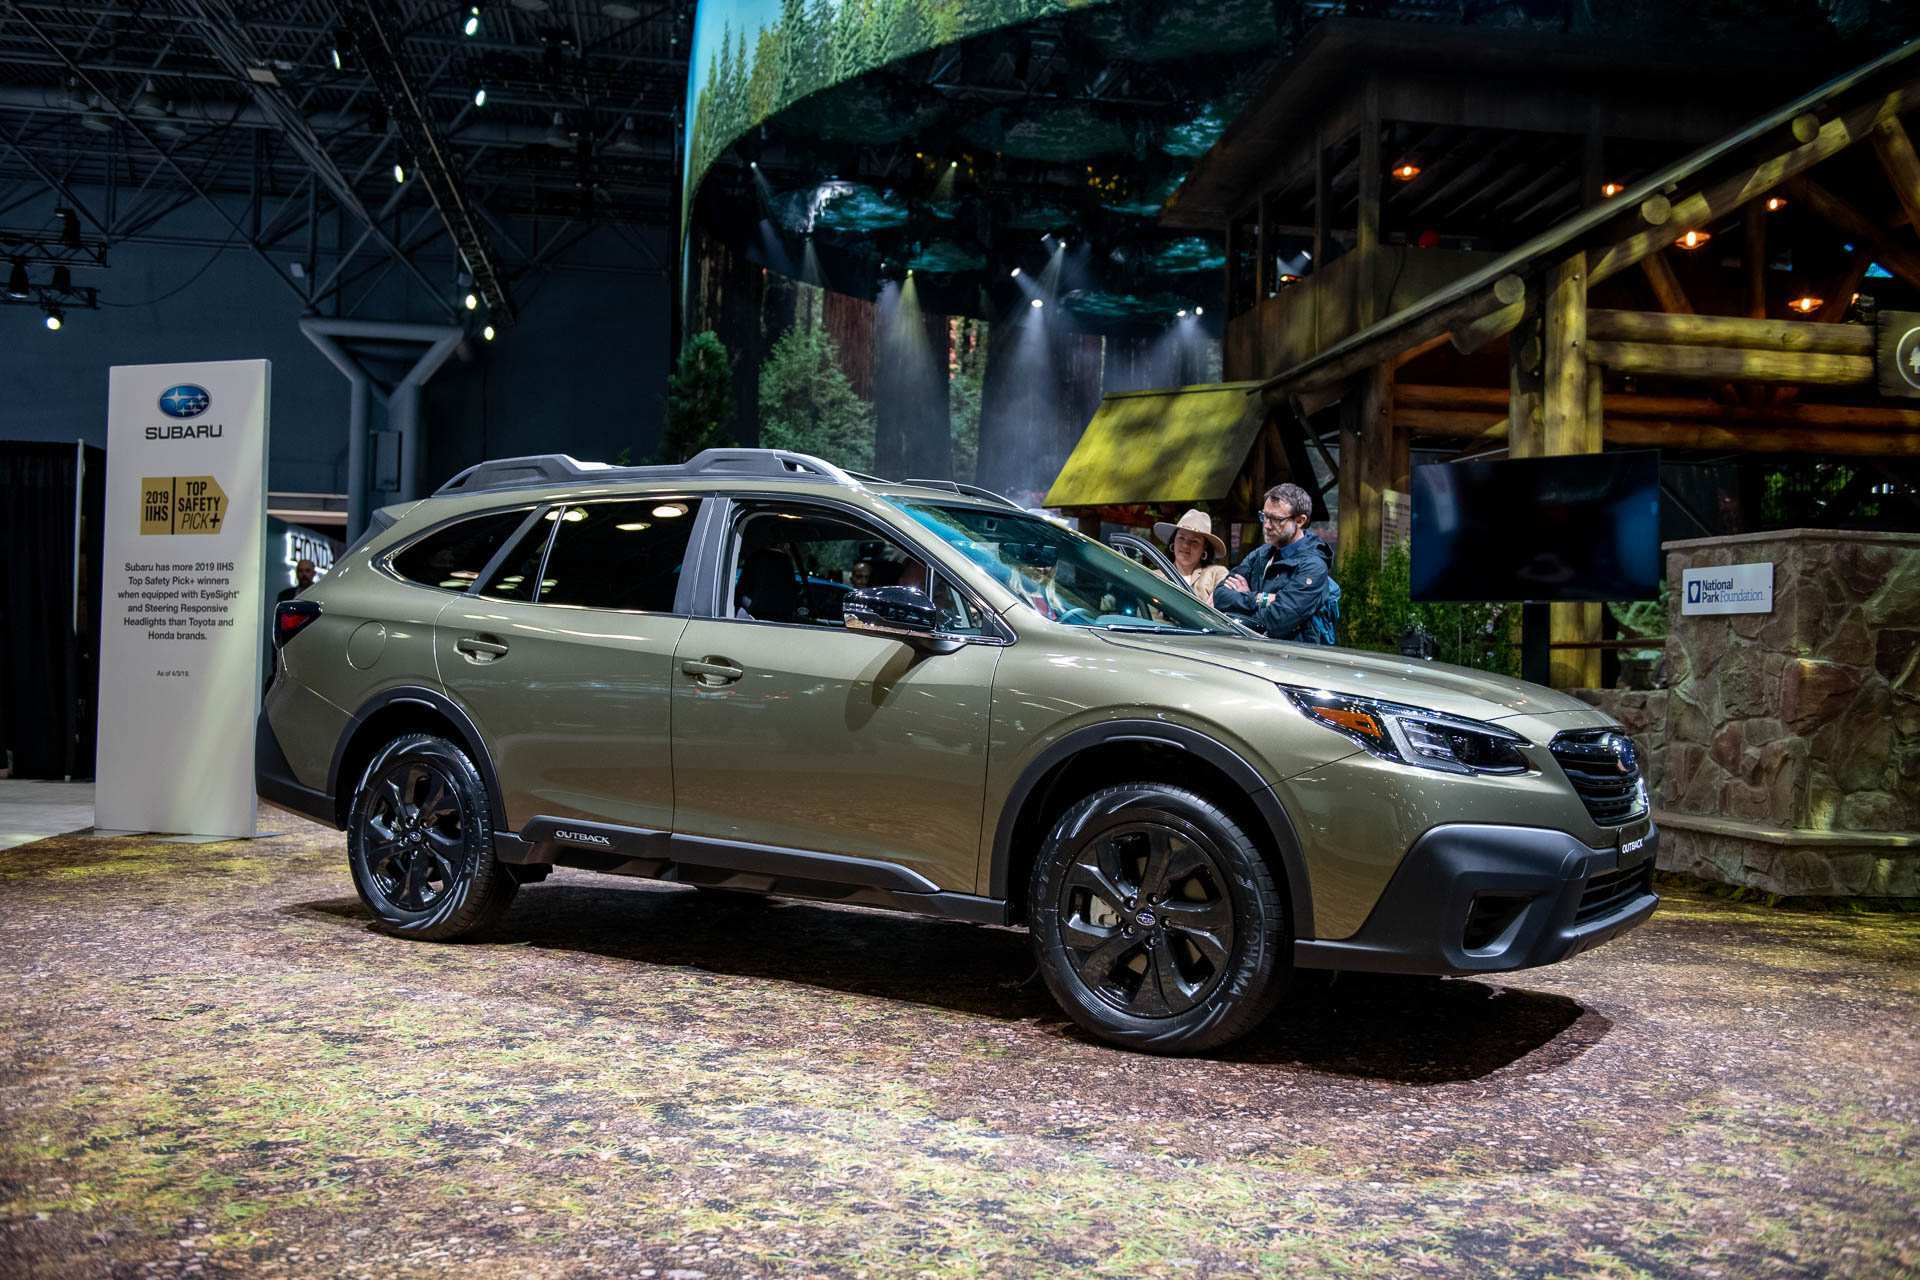 92 Gallery of When Will 2020 Subaru Outback Be Available Performance and New Engine with When Will 2020 Subaru Outback Be Available